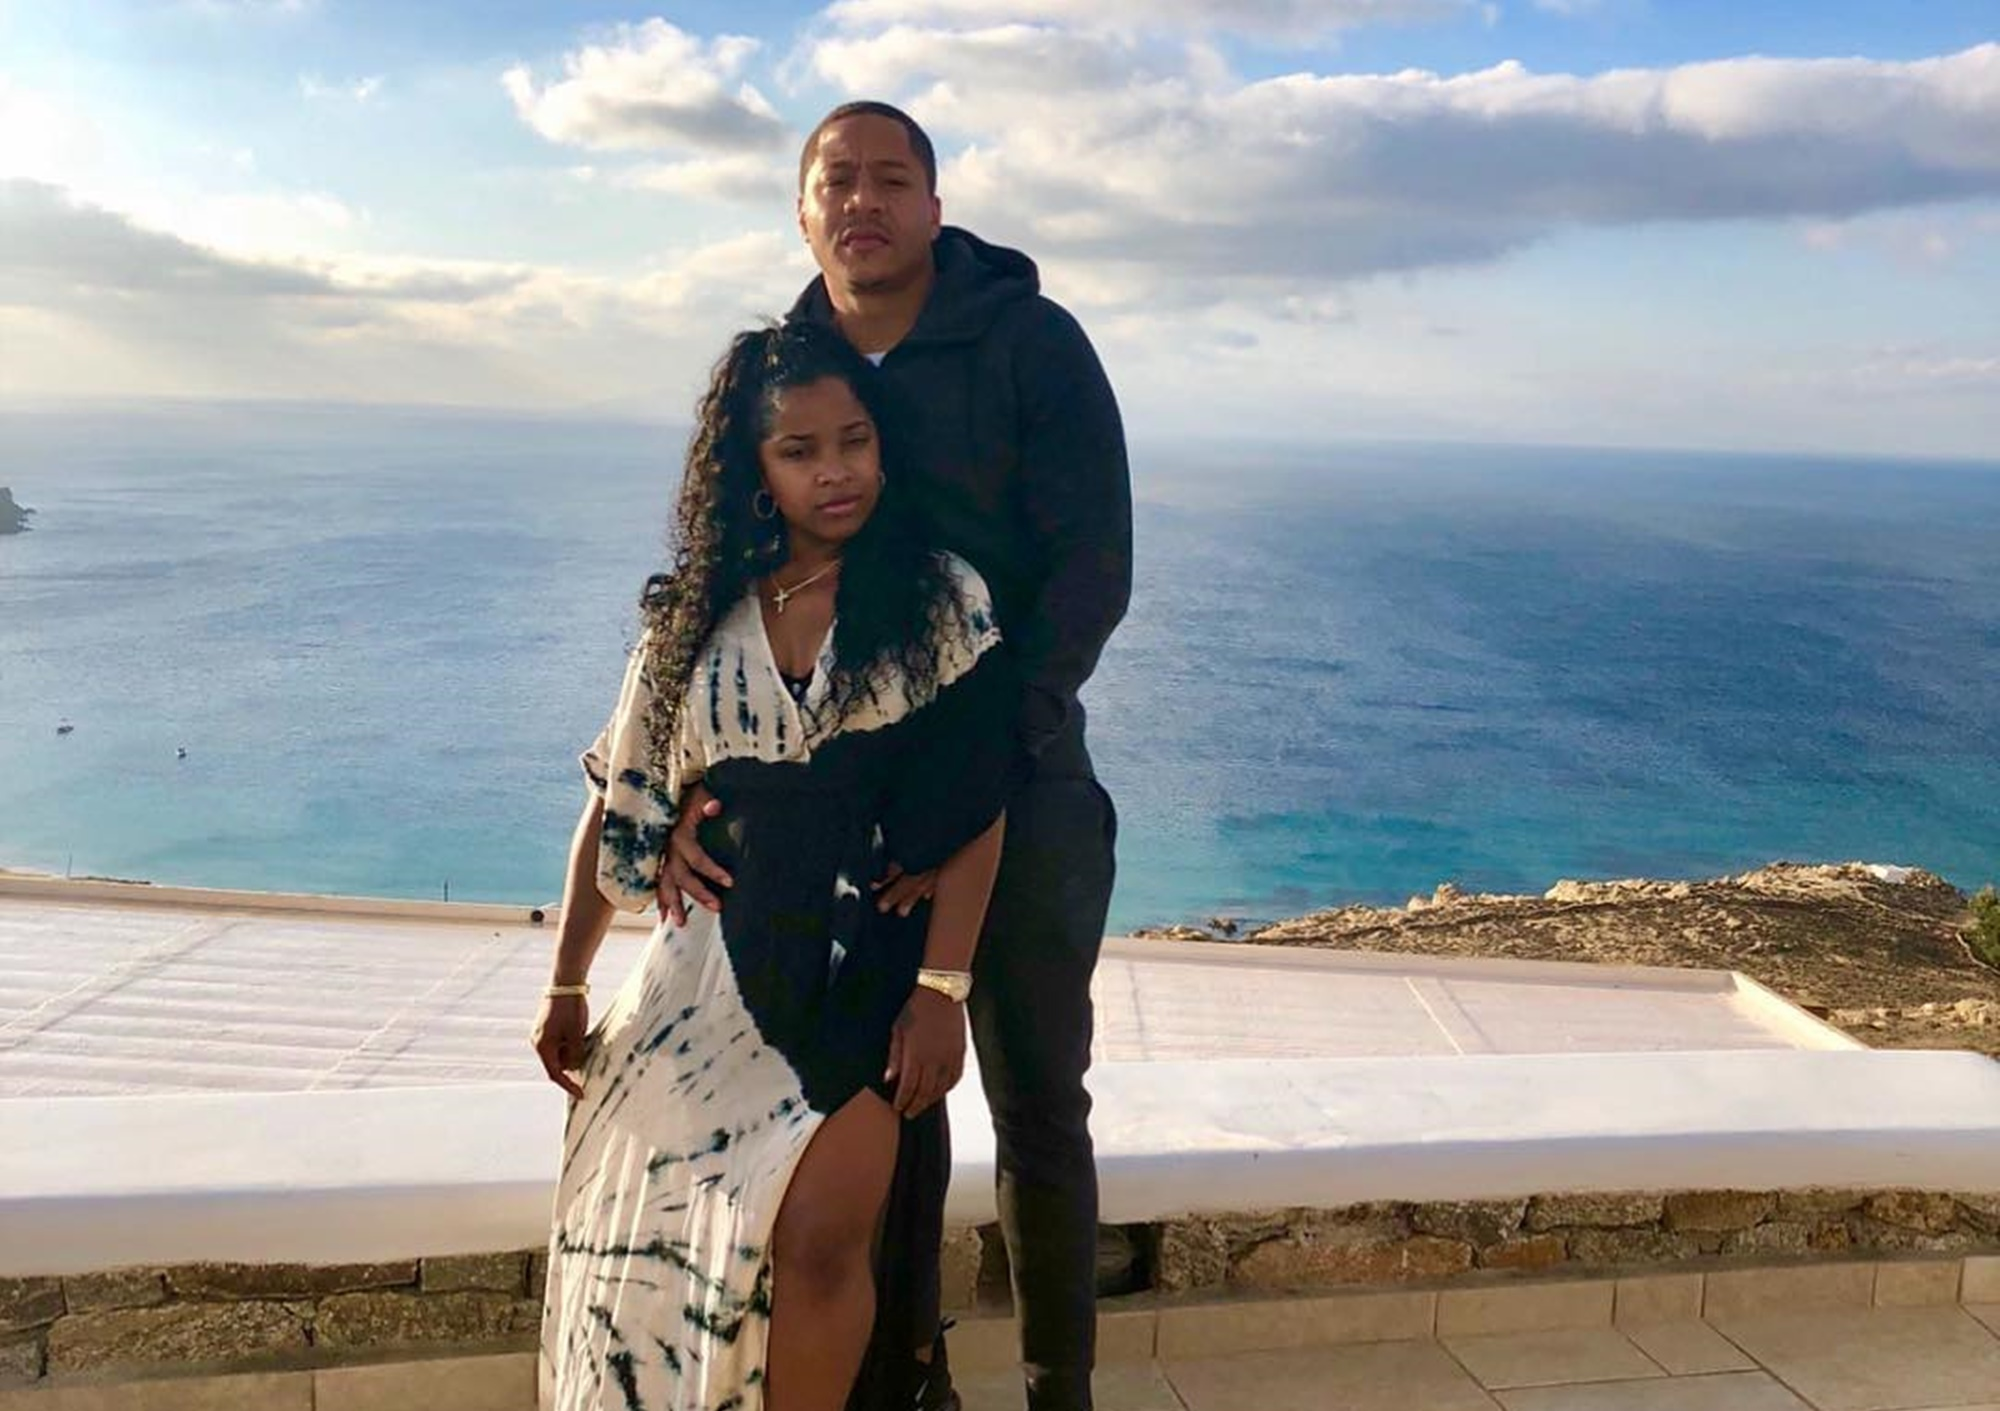 toya-wright-misses-reign-rushing-while-on-vacay-with-robert-rushing-see-the-sweet-video-with-reigny